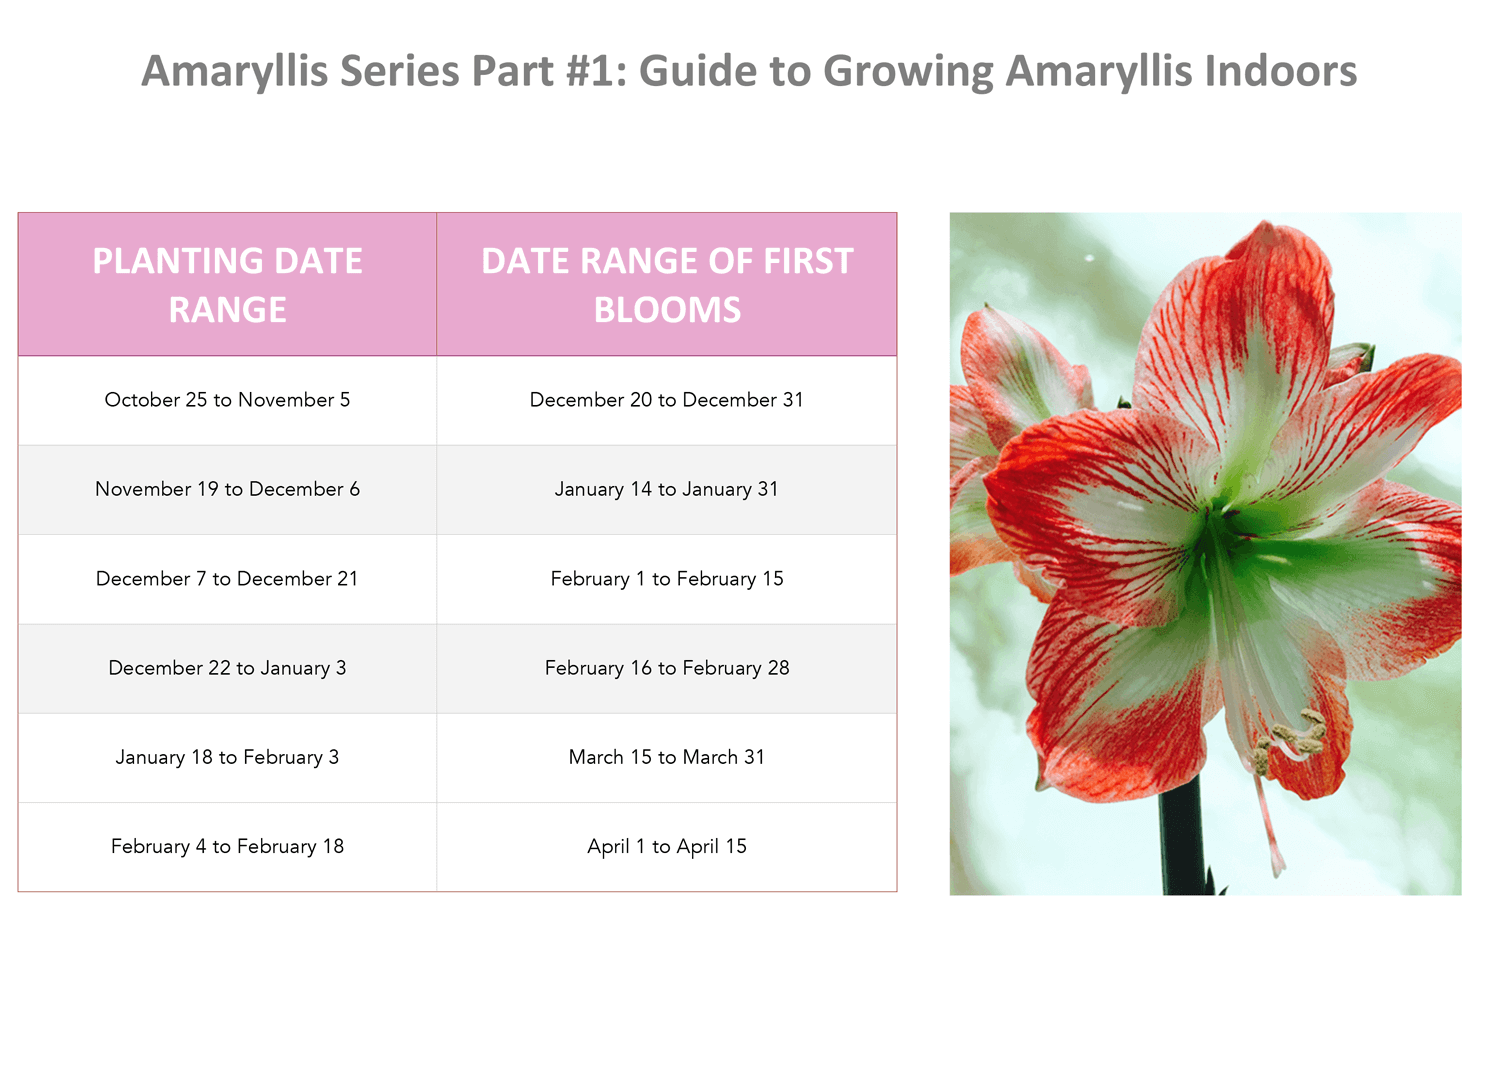 A Guide to Growing Amaryllis Indoors